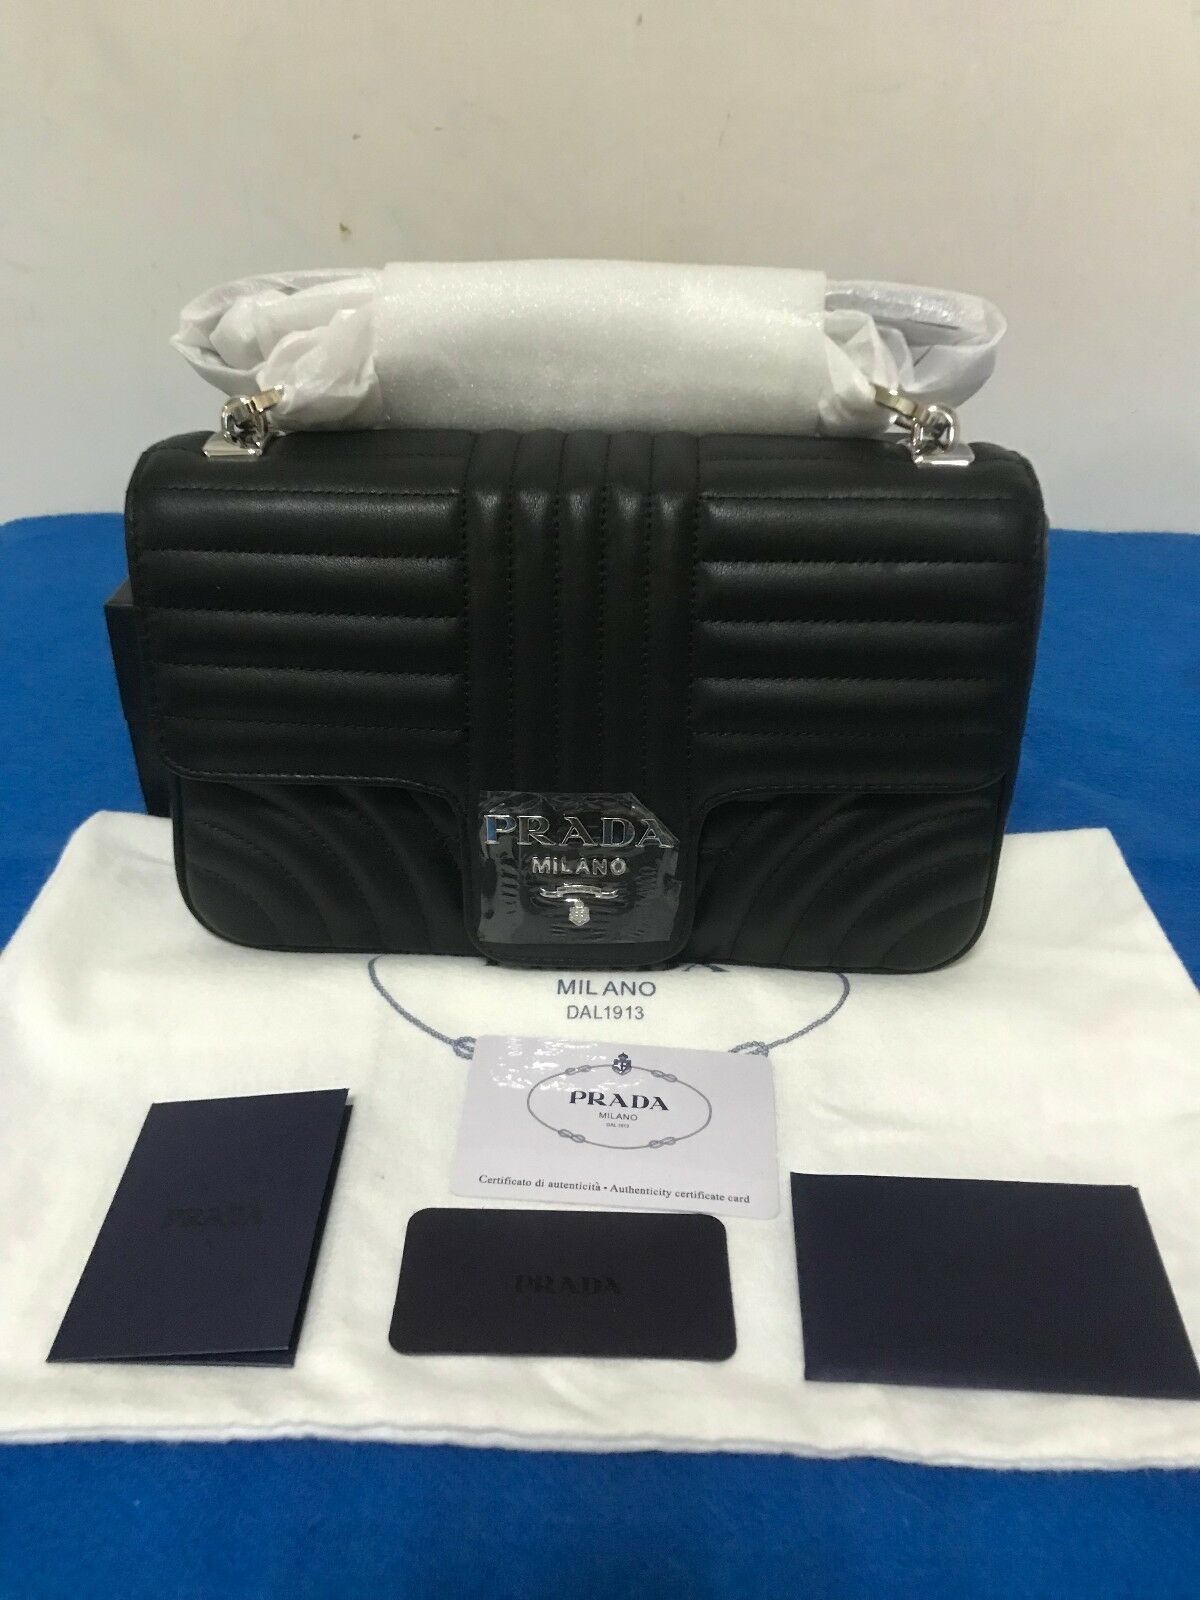 8abd878289ce Details about Tod's Black Leather Handbag NEW in 2019 | Prada ...